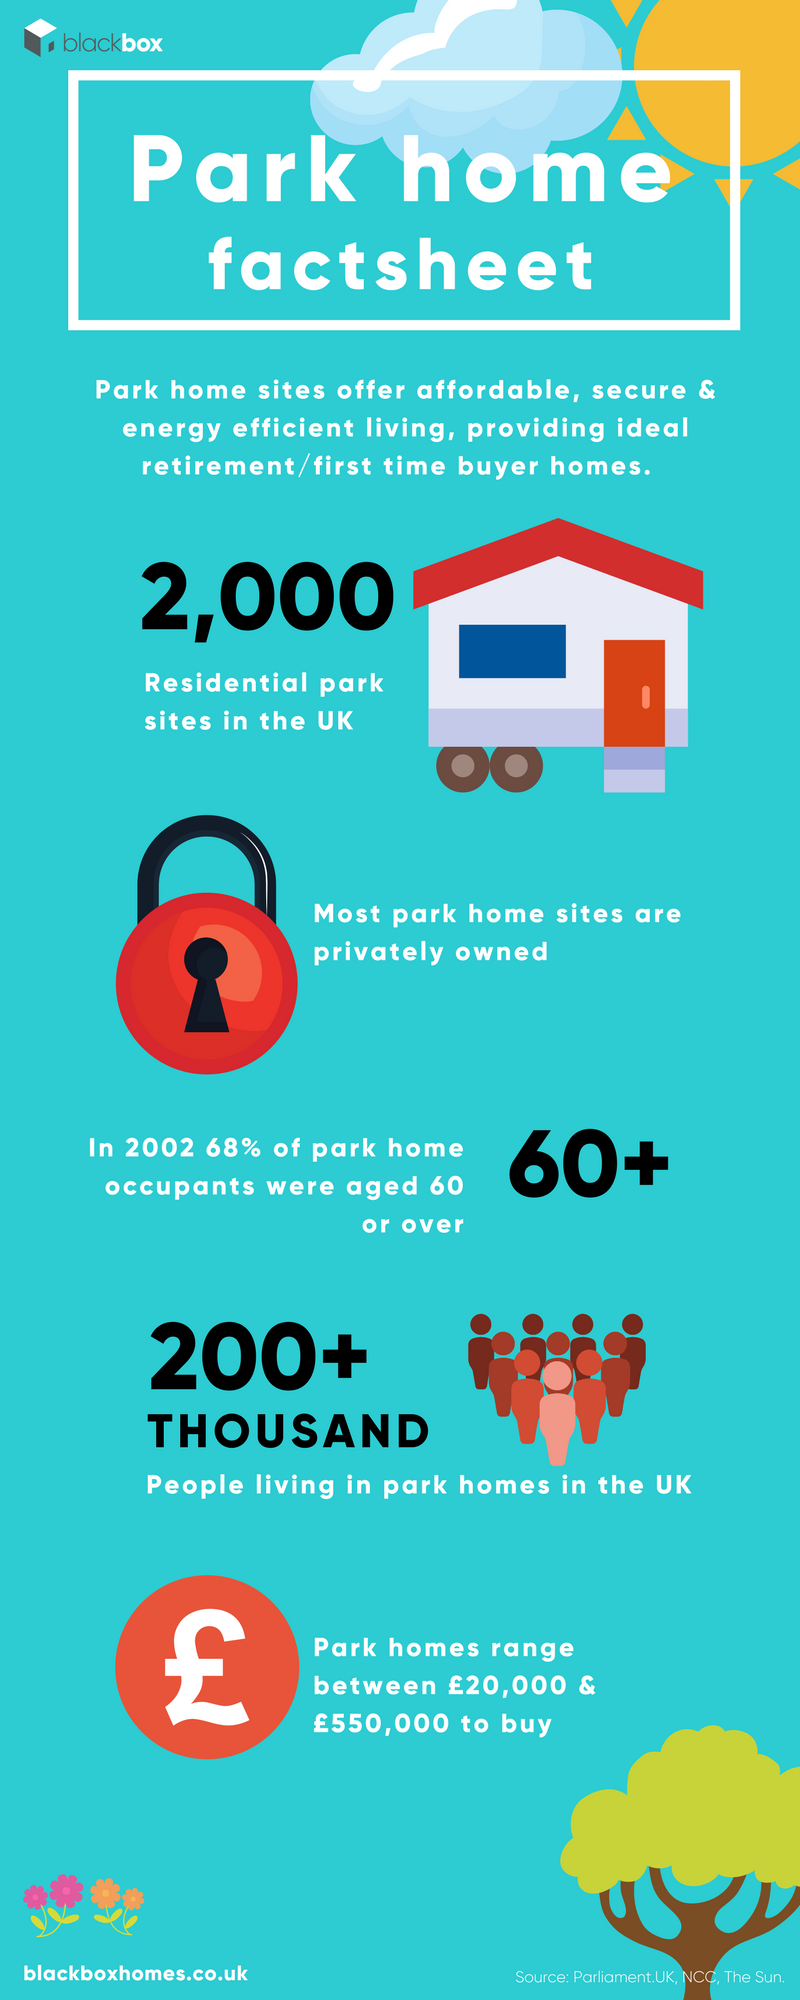 Park home fact sheet featured image